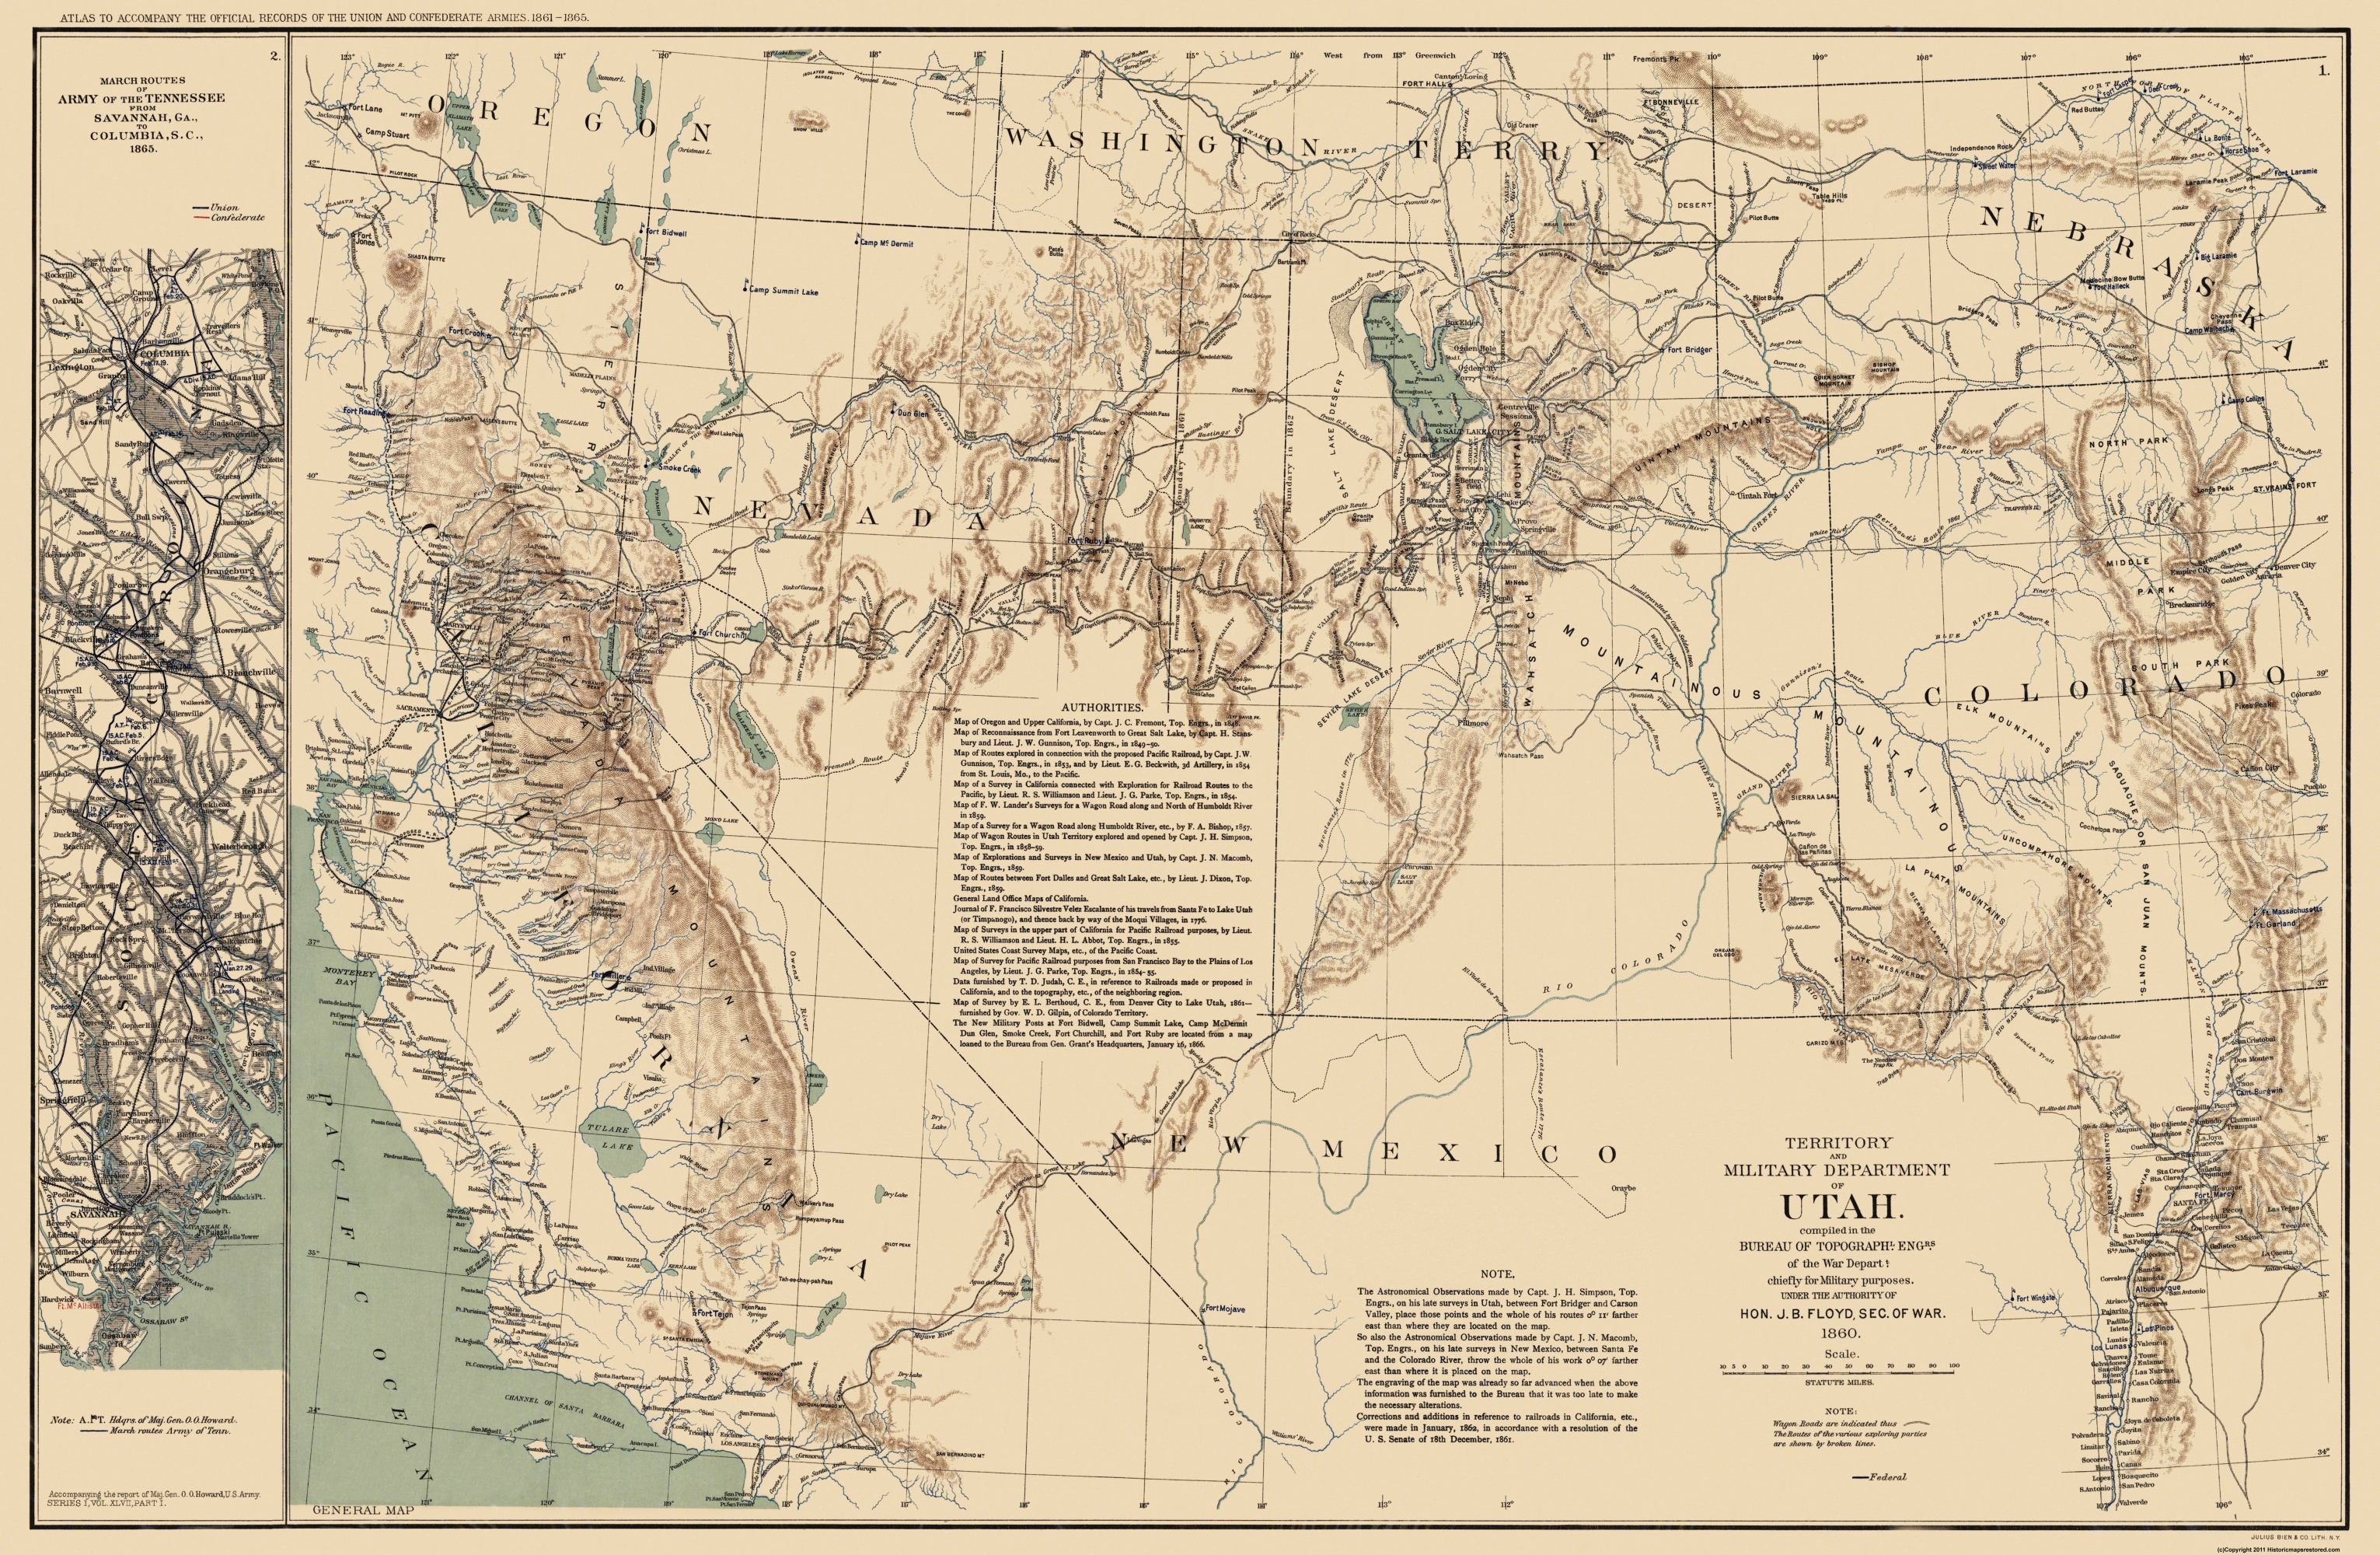 Old State Map Utah Territory US War Dept 1860